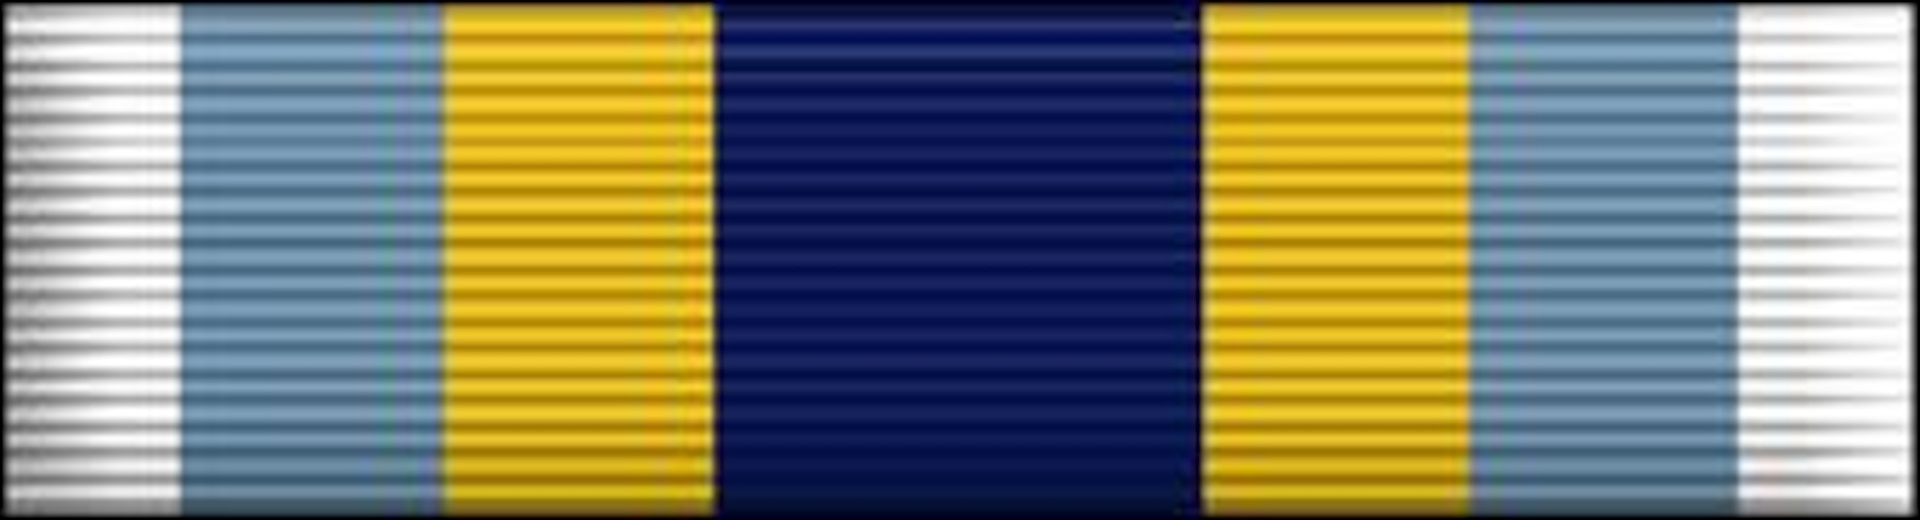 USAF Basic Military Training Honor Graduate Ribbon, Air Force Awards and Decorations (enhance color), U.S. Air Force graphic, AFNEWS/PAND.  The JPG image is a stylized version whereas the EPS version is a two-dimensional line art illustration.